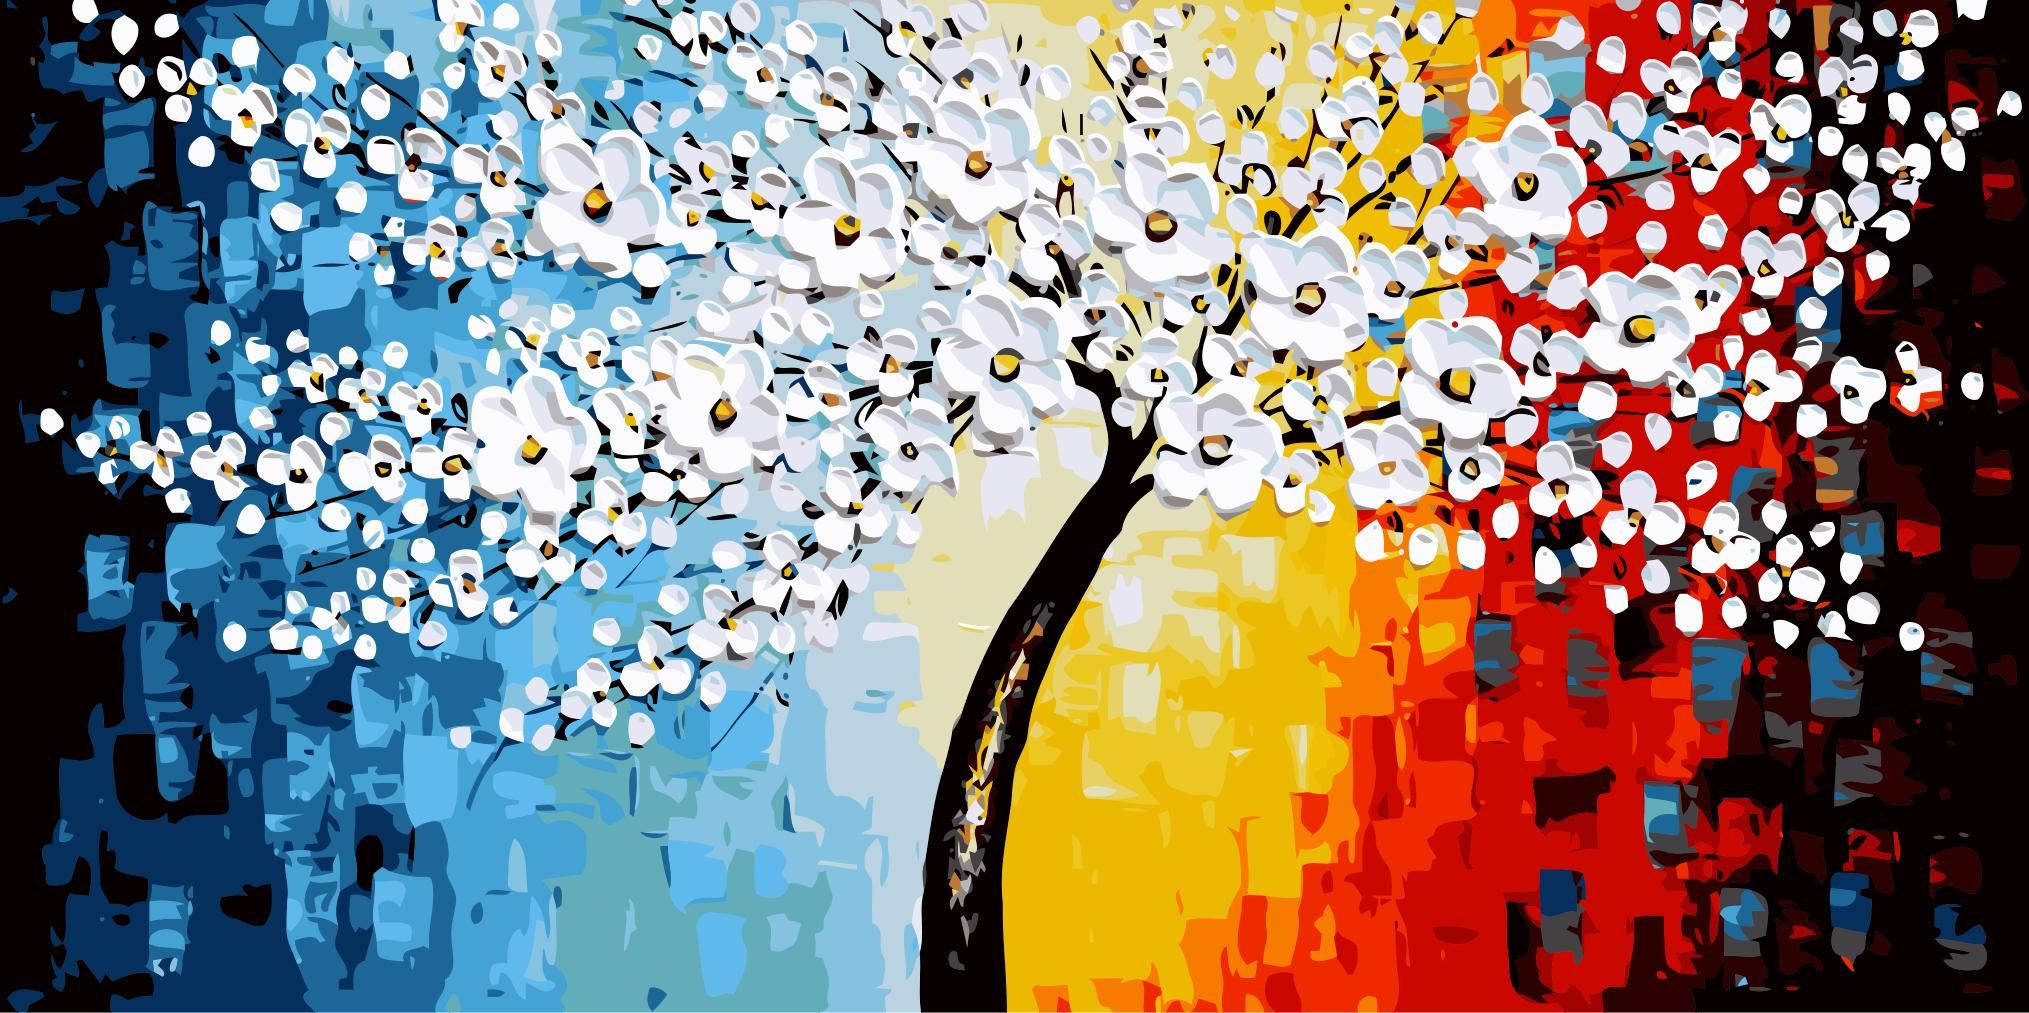 Flowers Paint By Number Kit Large Diy Painting Tree Abstract Picture On Canvas Paint Coloring By Number Diy Painting Gift 50 100cm Diy Tree Painting Paint By Number Abstract Pictures